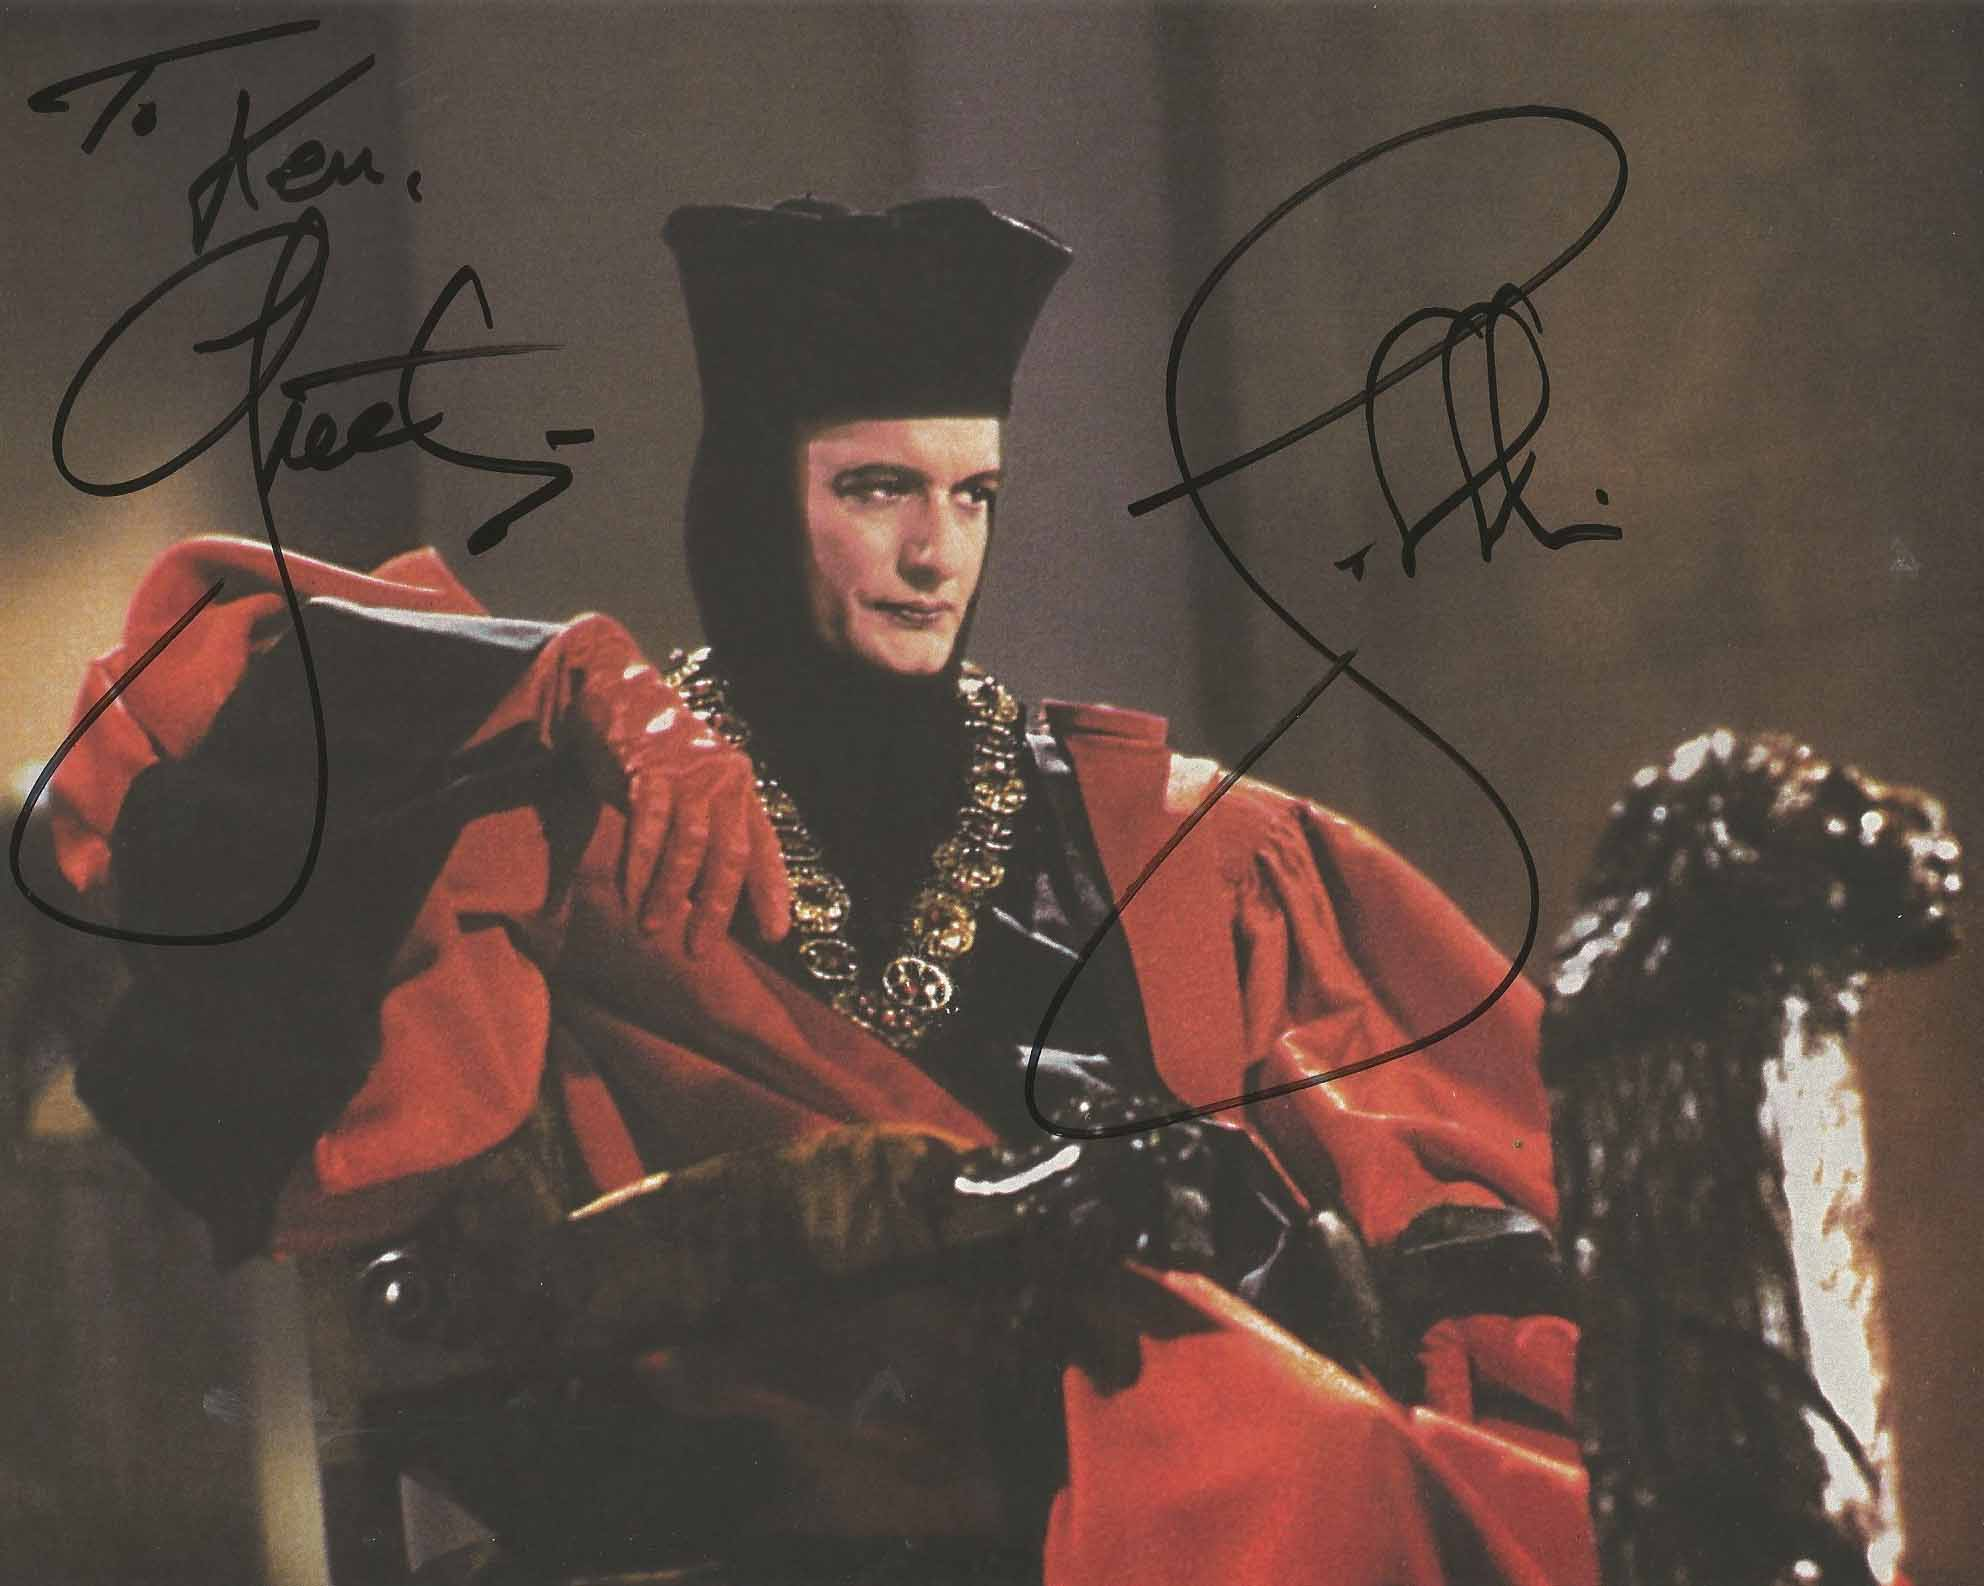 JohnDeLancie_autograph_small.jpg